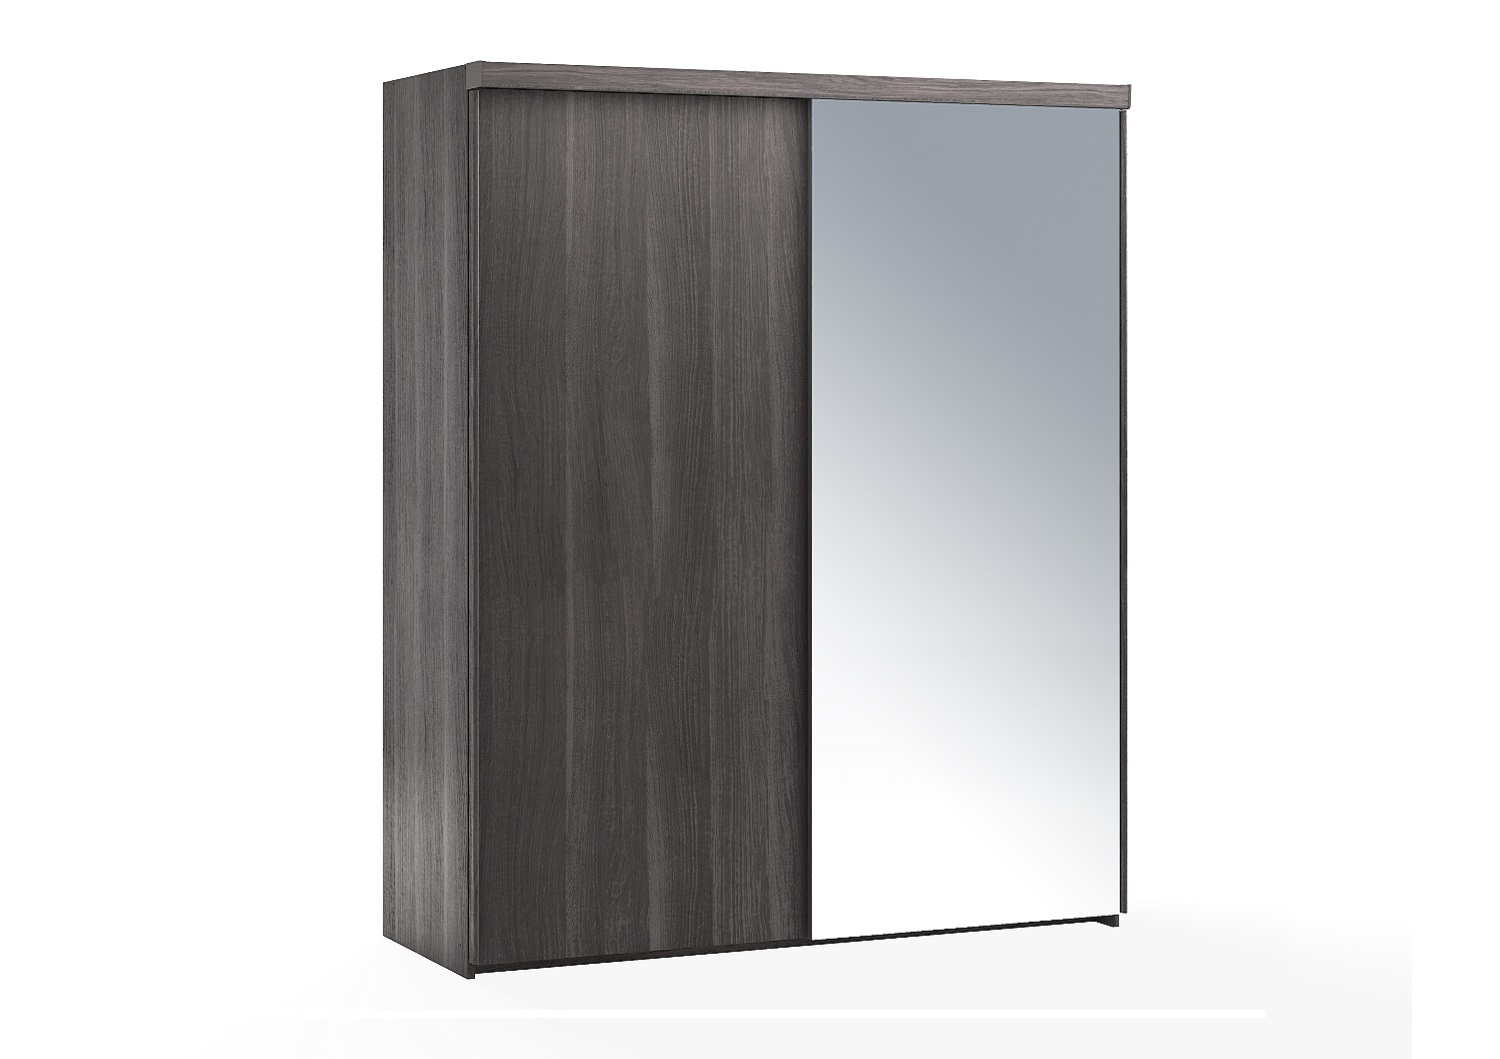 Bilrich Bedroom Furniture - No Limit Wardrobe